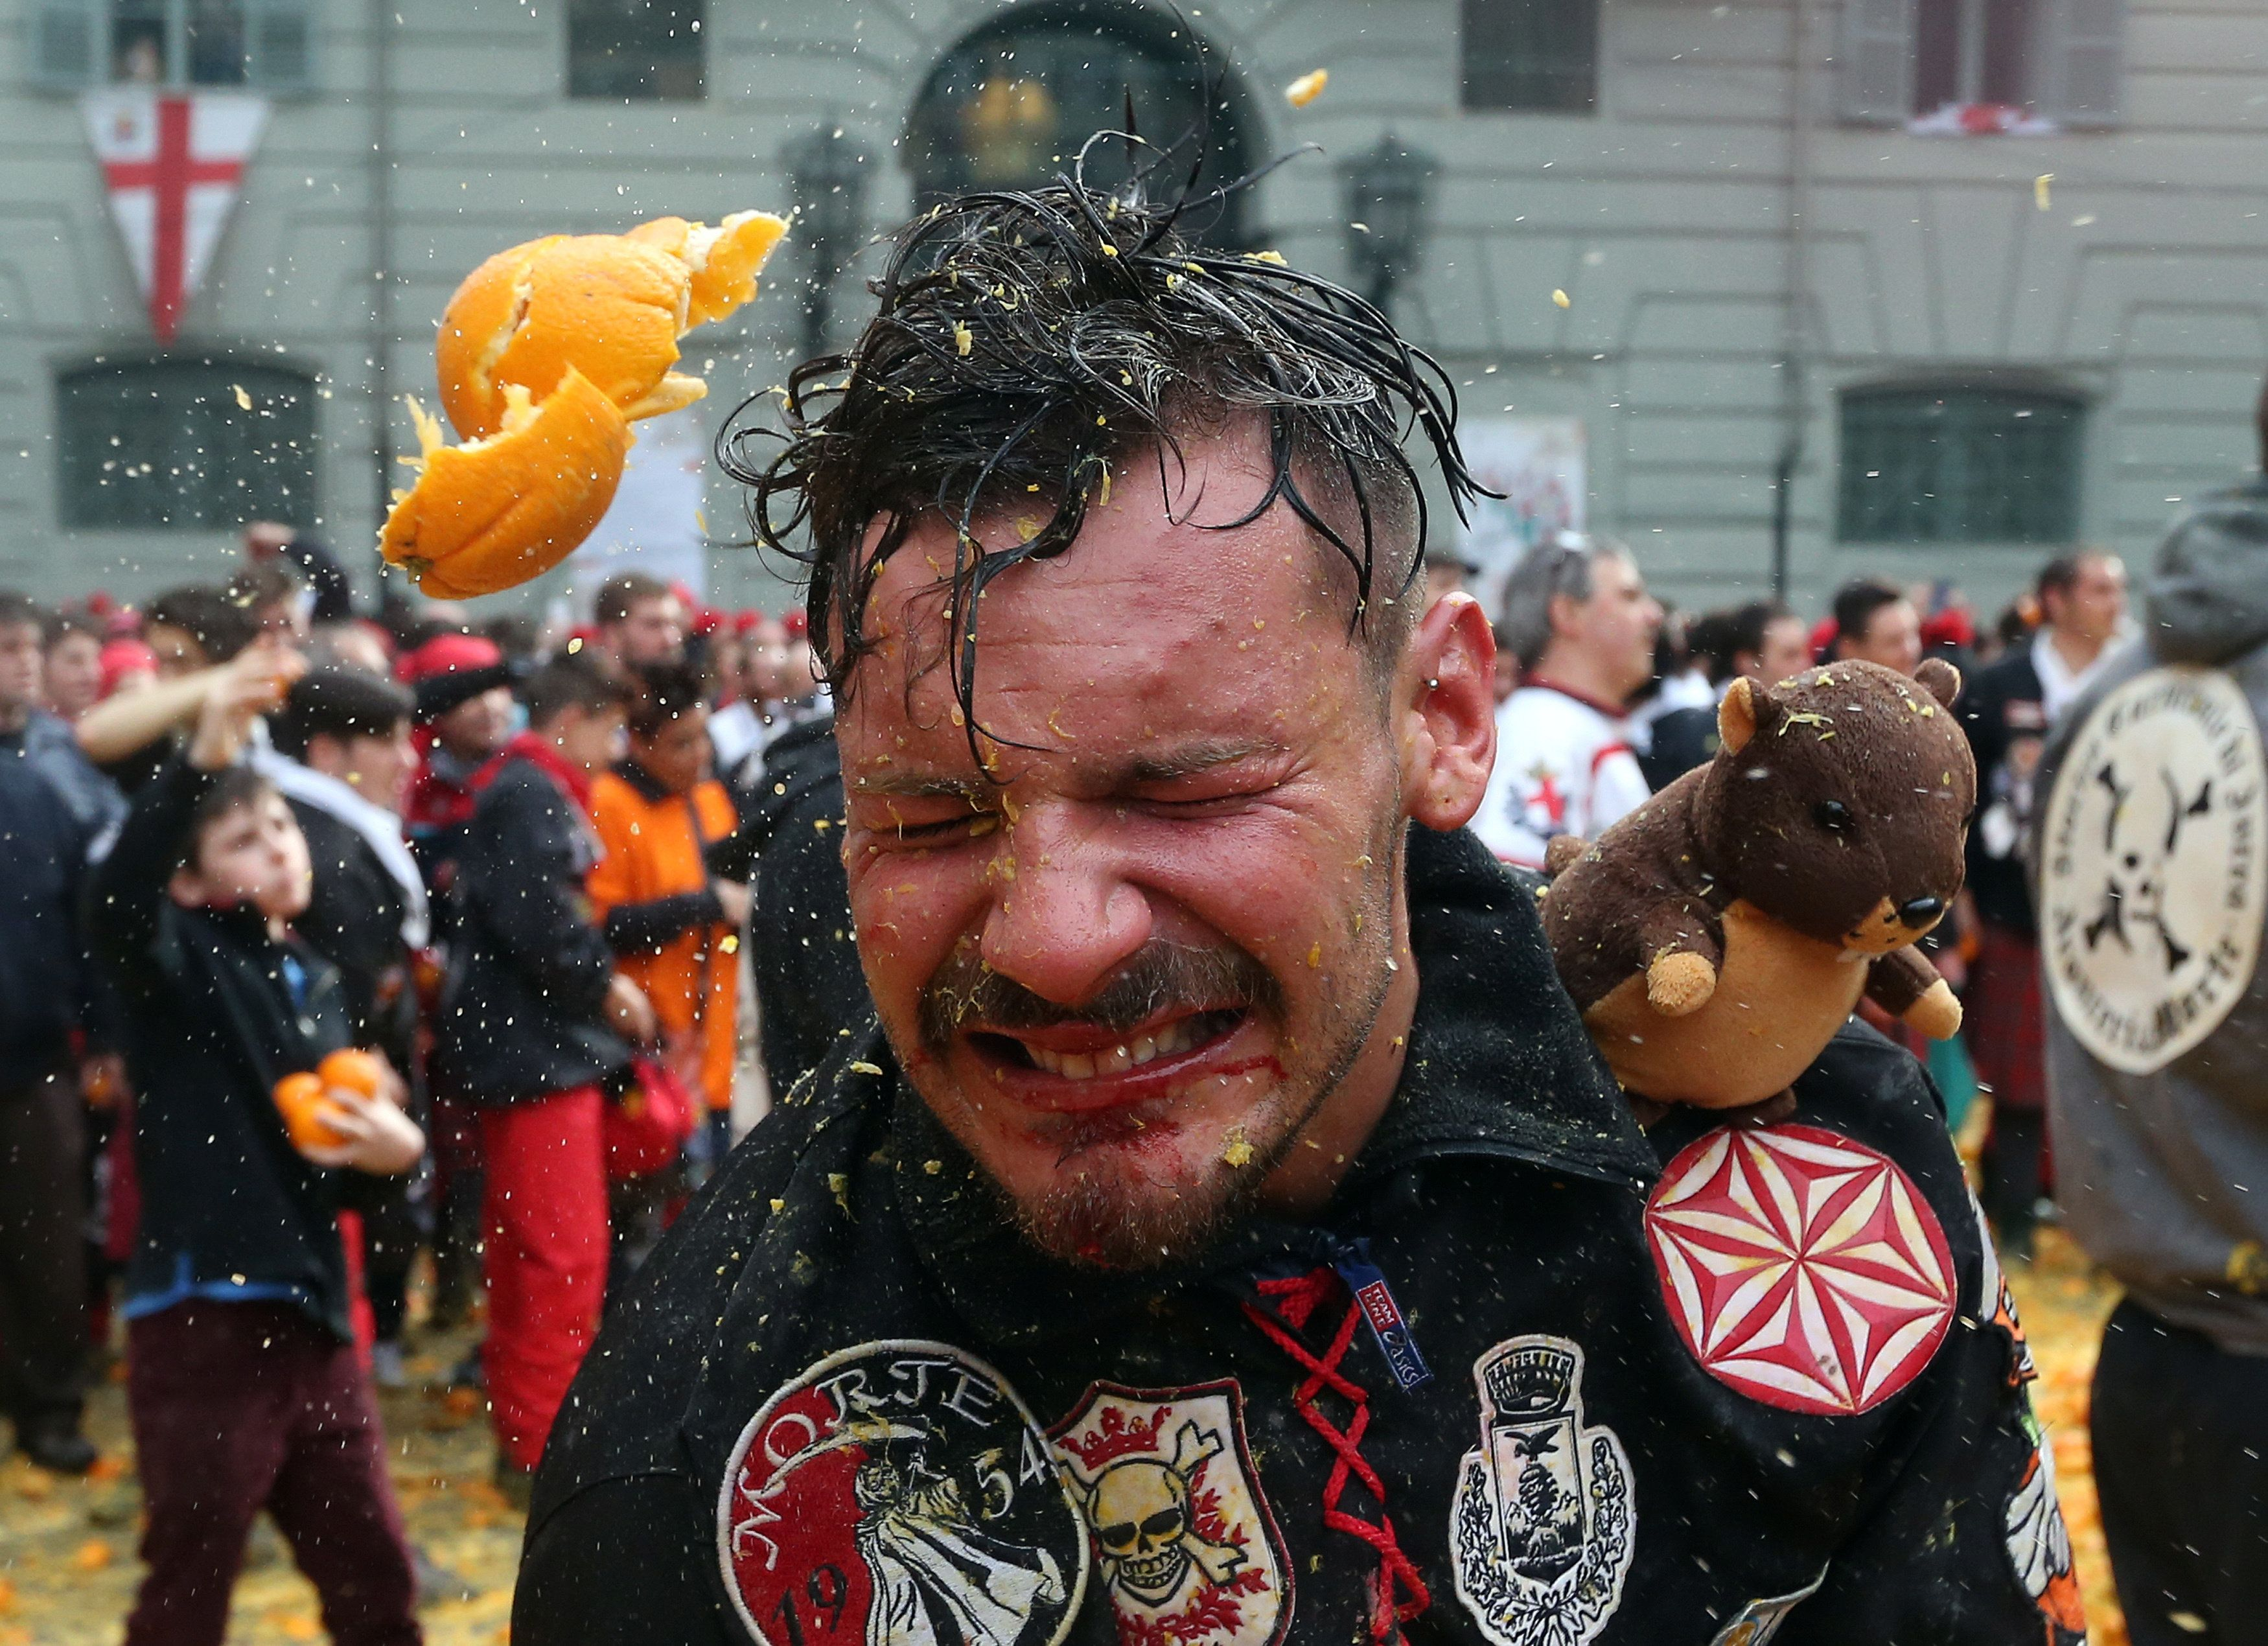 A man is hit by flying fruit during the annual Battle of the Oranges in the northern Italian town of Ivrea on Feb. 26, 2